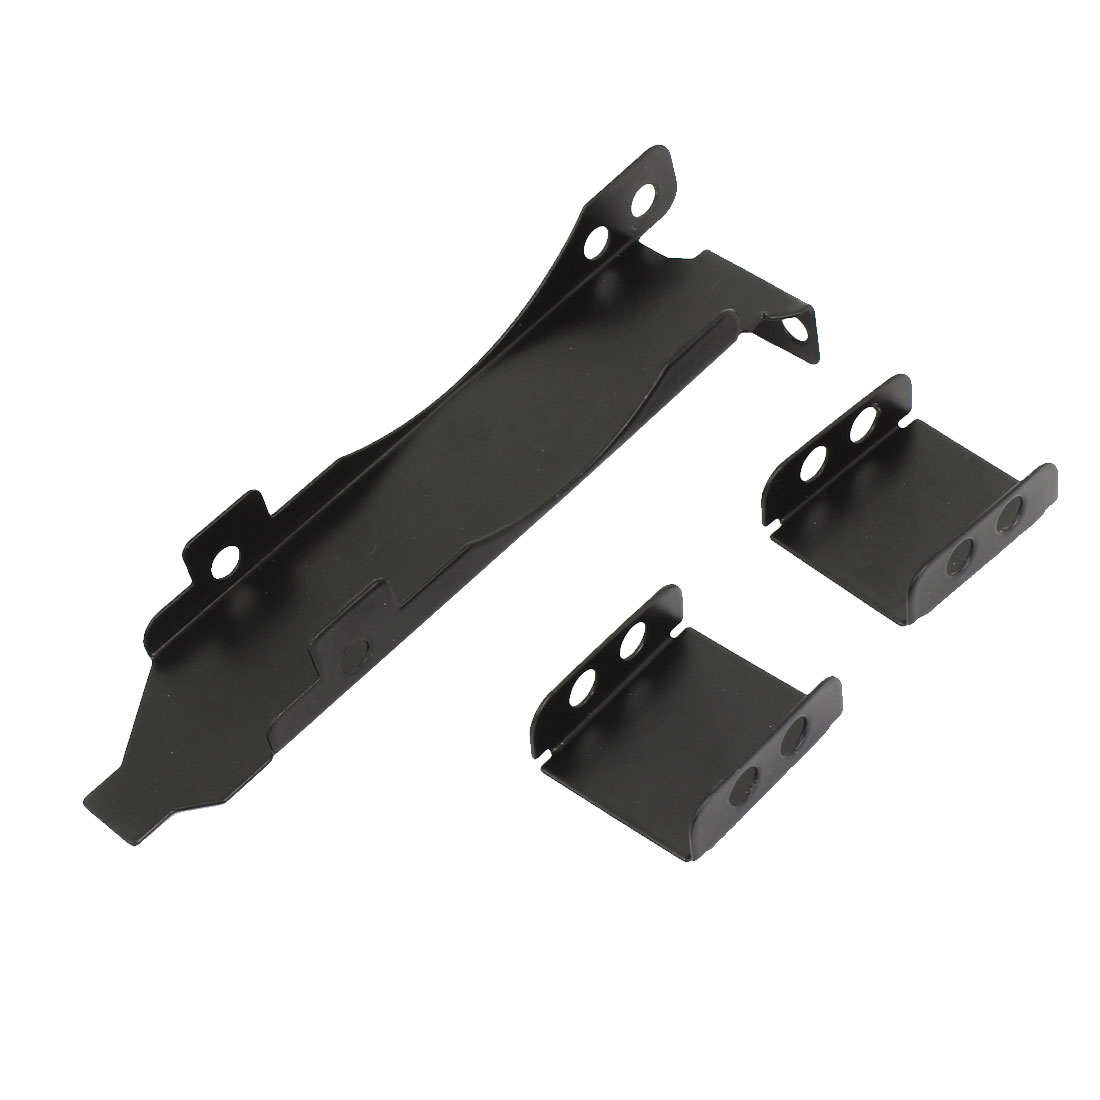 PC PCI Slot Bracket Dual Fan Rack Mount Set for VGA Video Card System Cooling